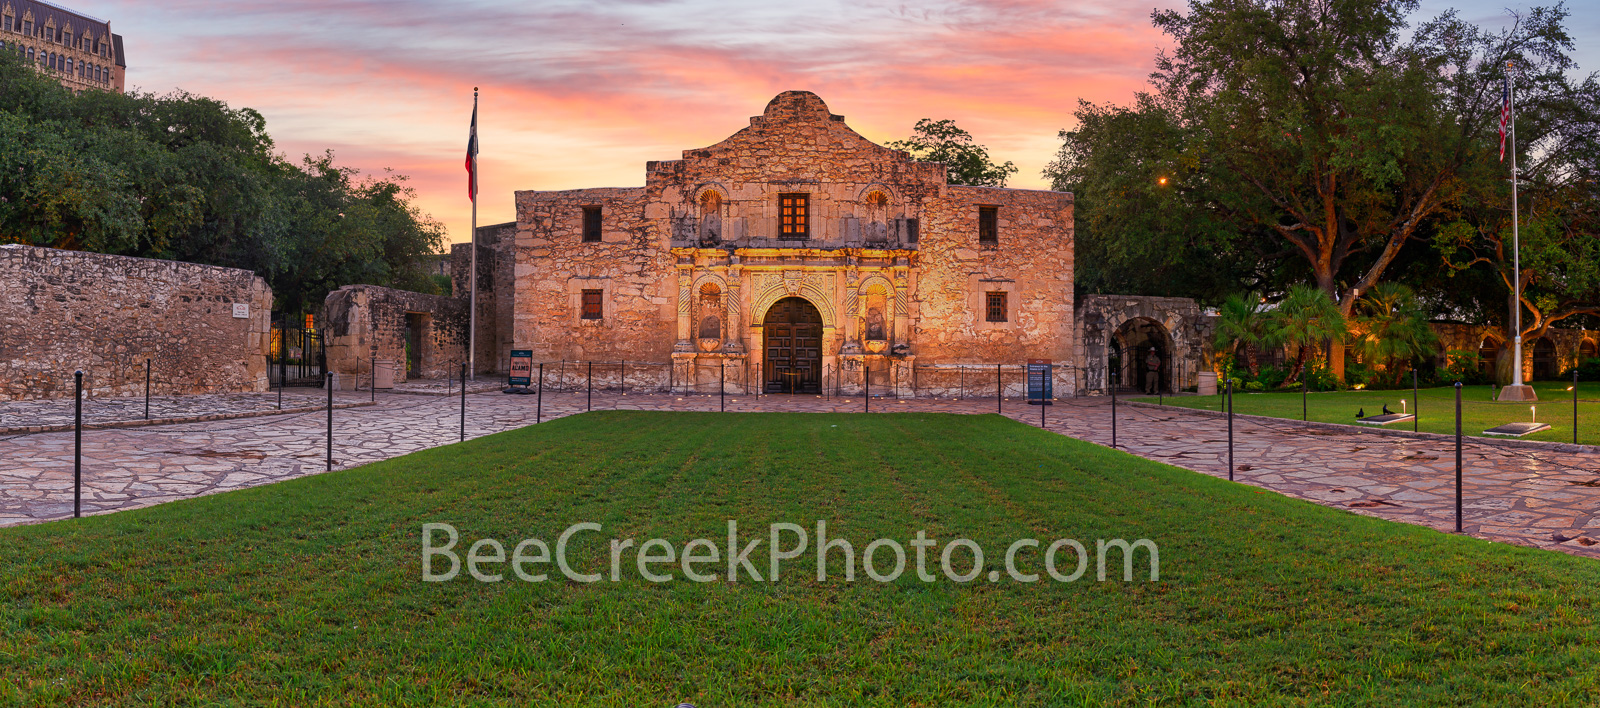 Texas Alamo, San Antonio, Alamo sunrise pano, historic, history, landmark, pano, panorama, downtown, city, mission, sunrise, dusk, twilight, sunset, Santa Anna, mexico, tourist, travel, historic landm, photo